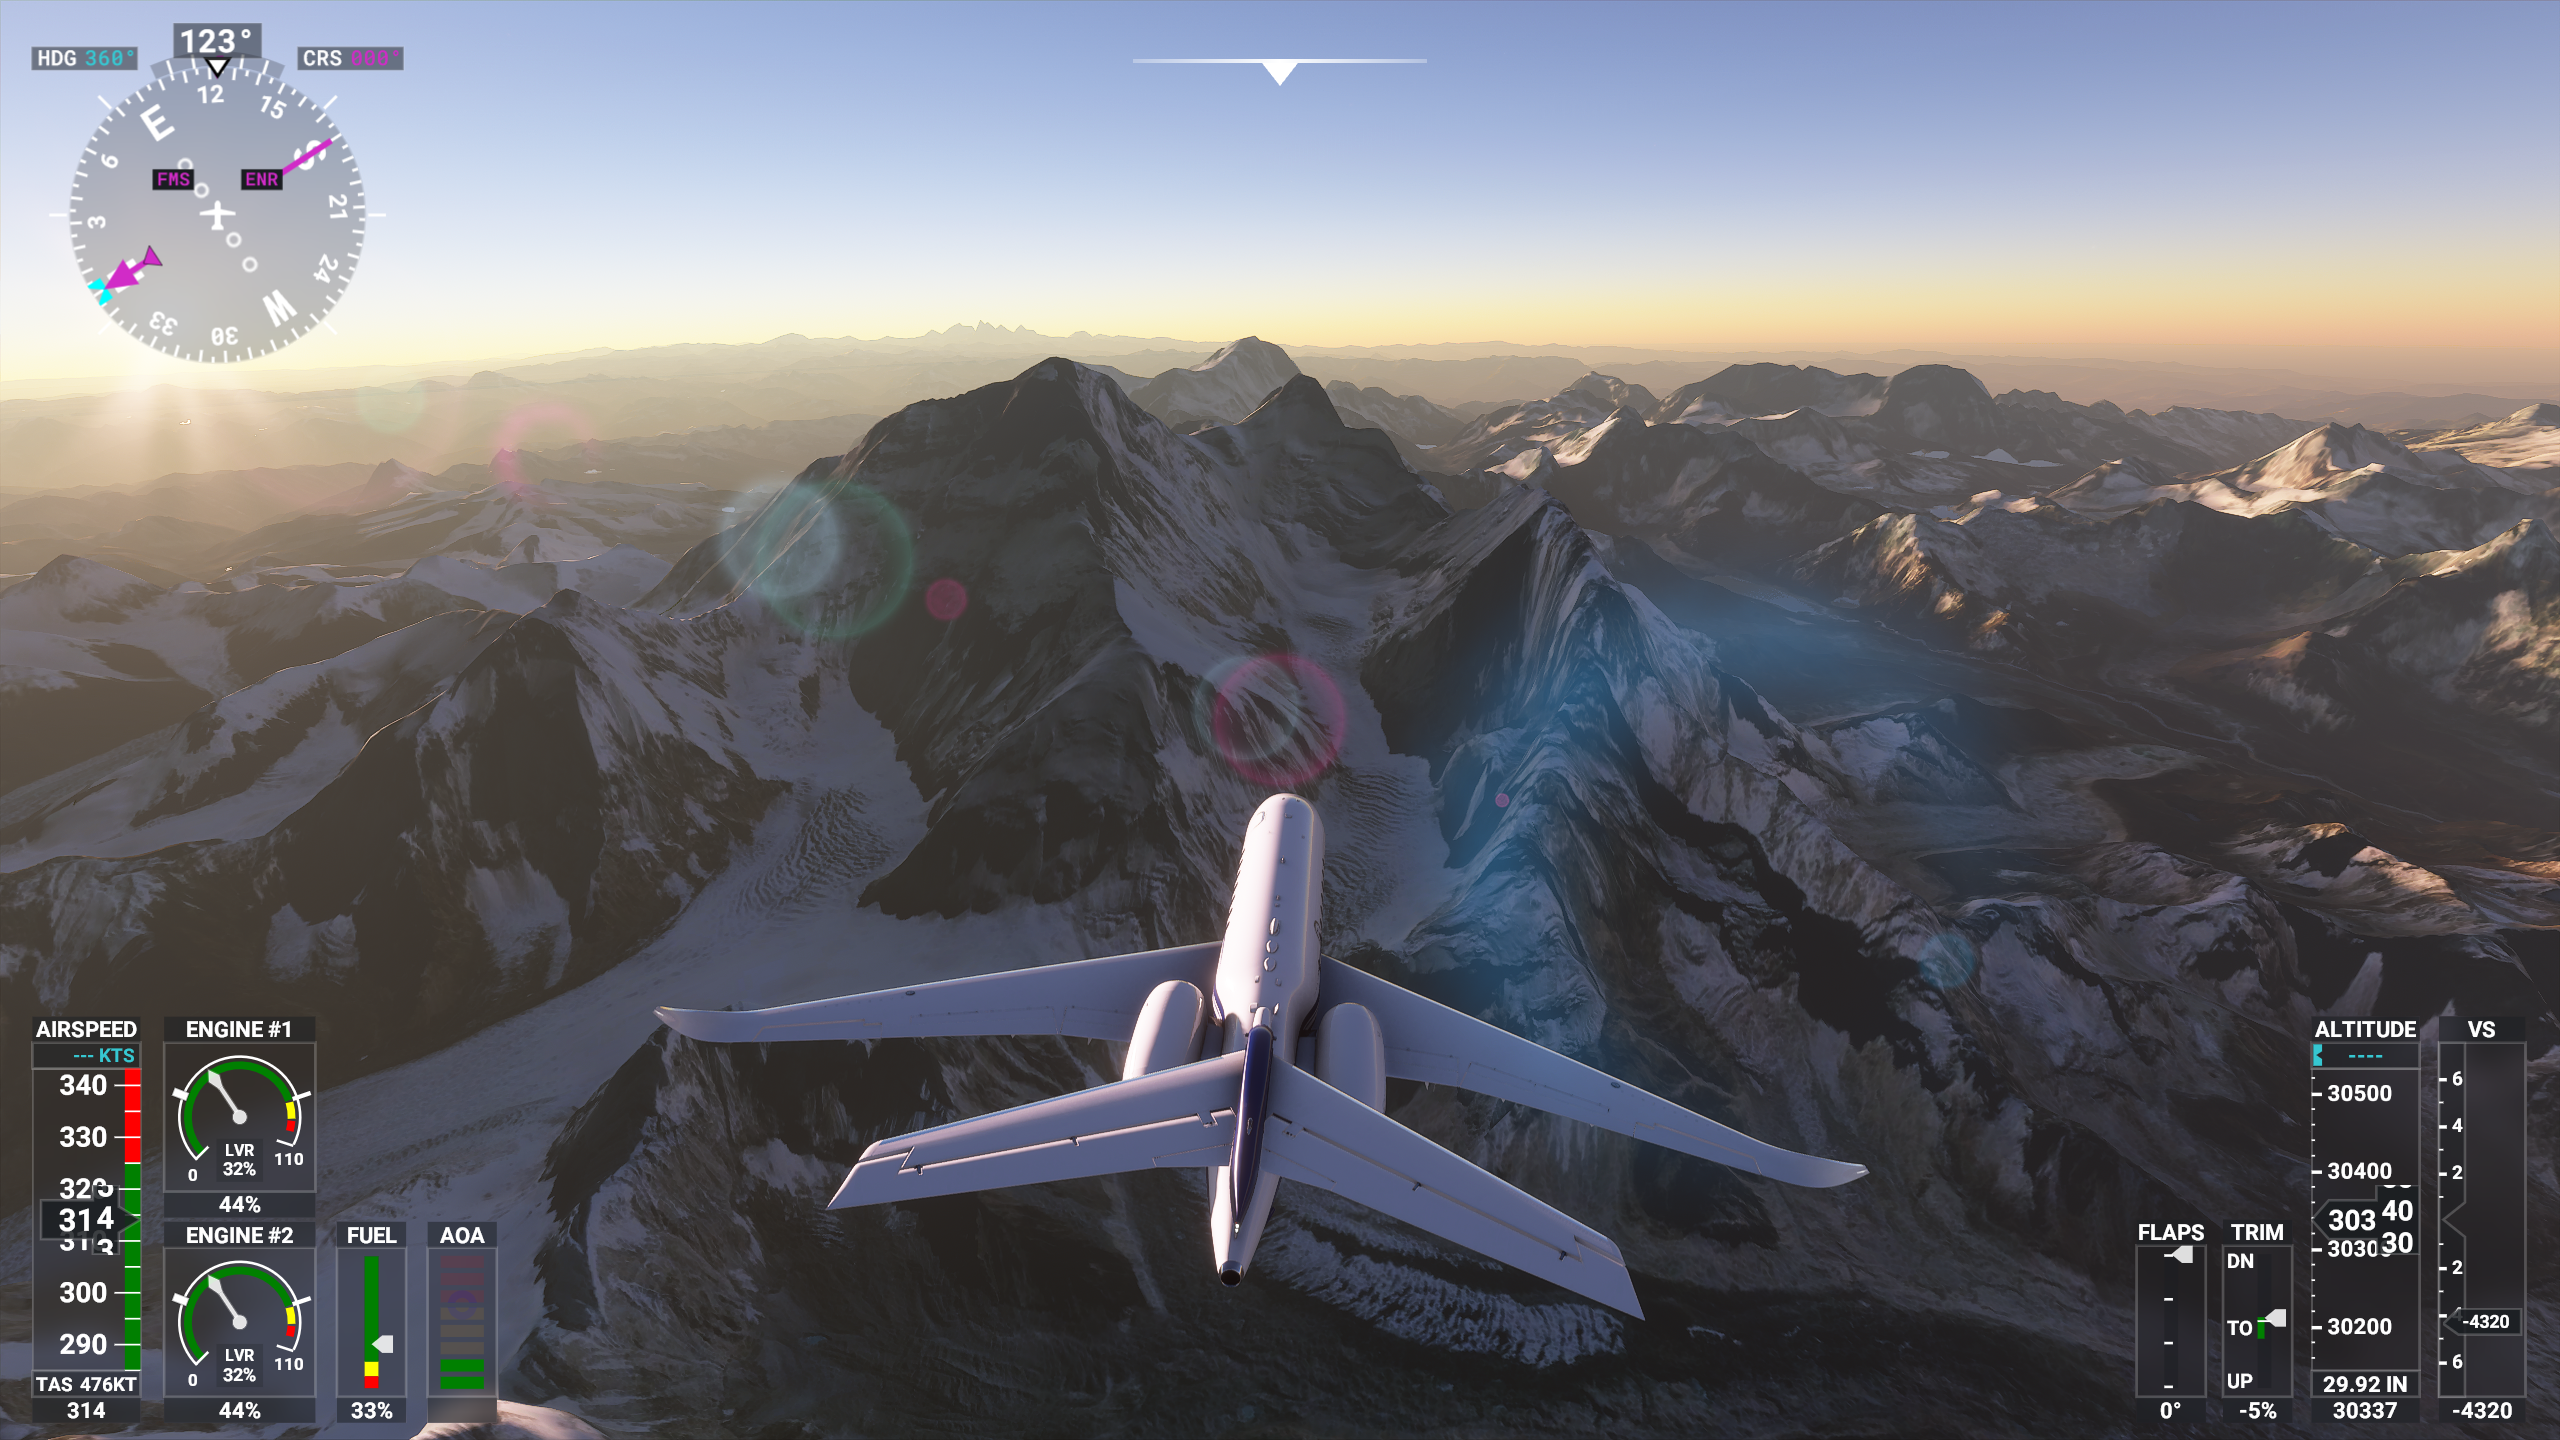 2020-08-19 22_16_29-Microsoft Flight Simulator - 1.7.12.0.png